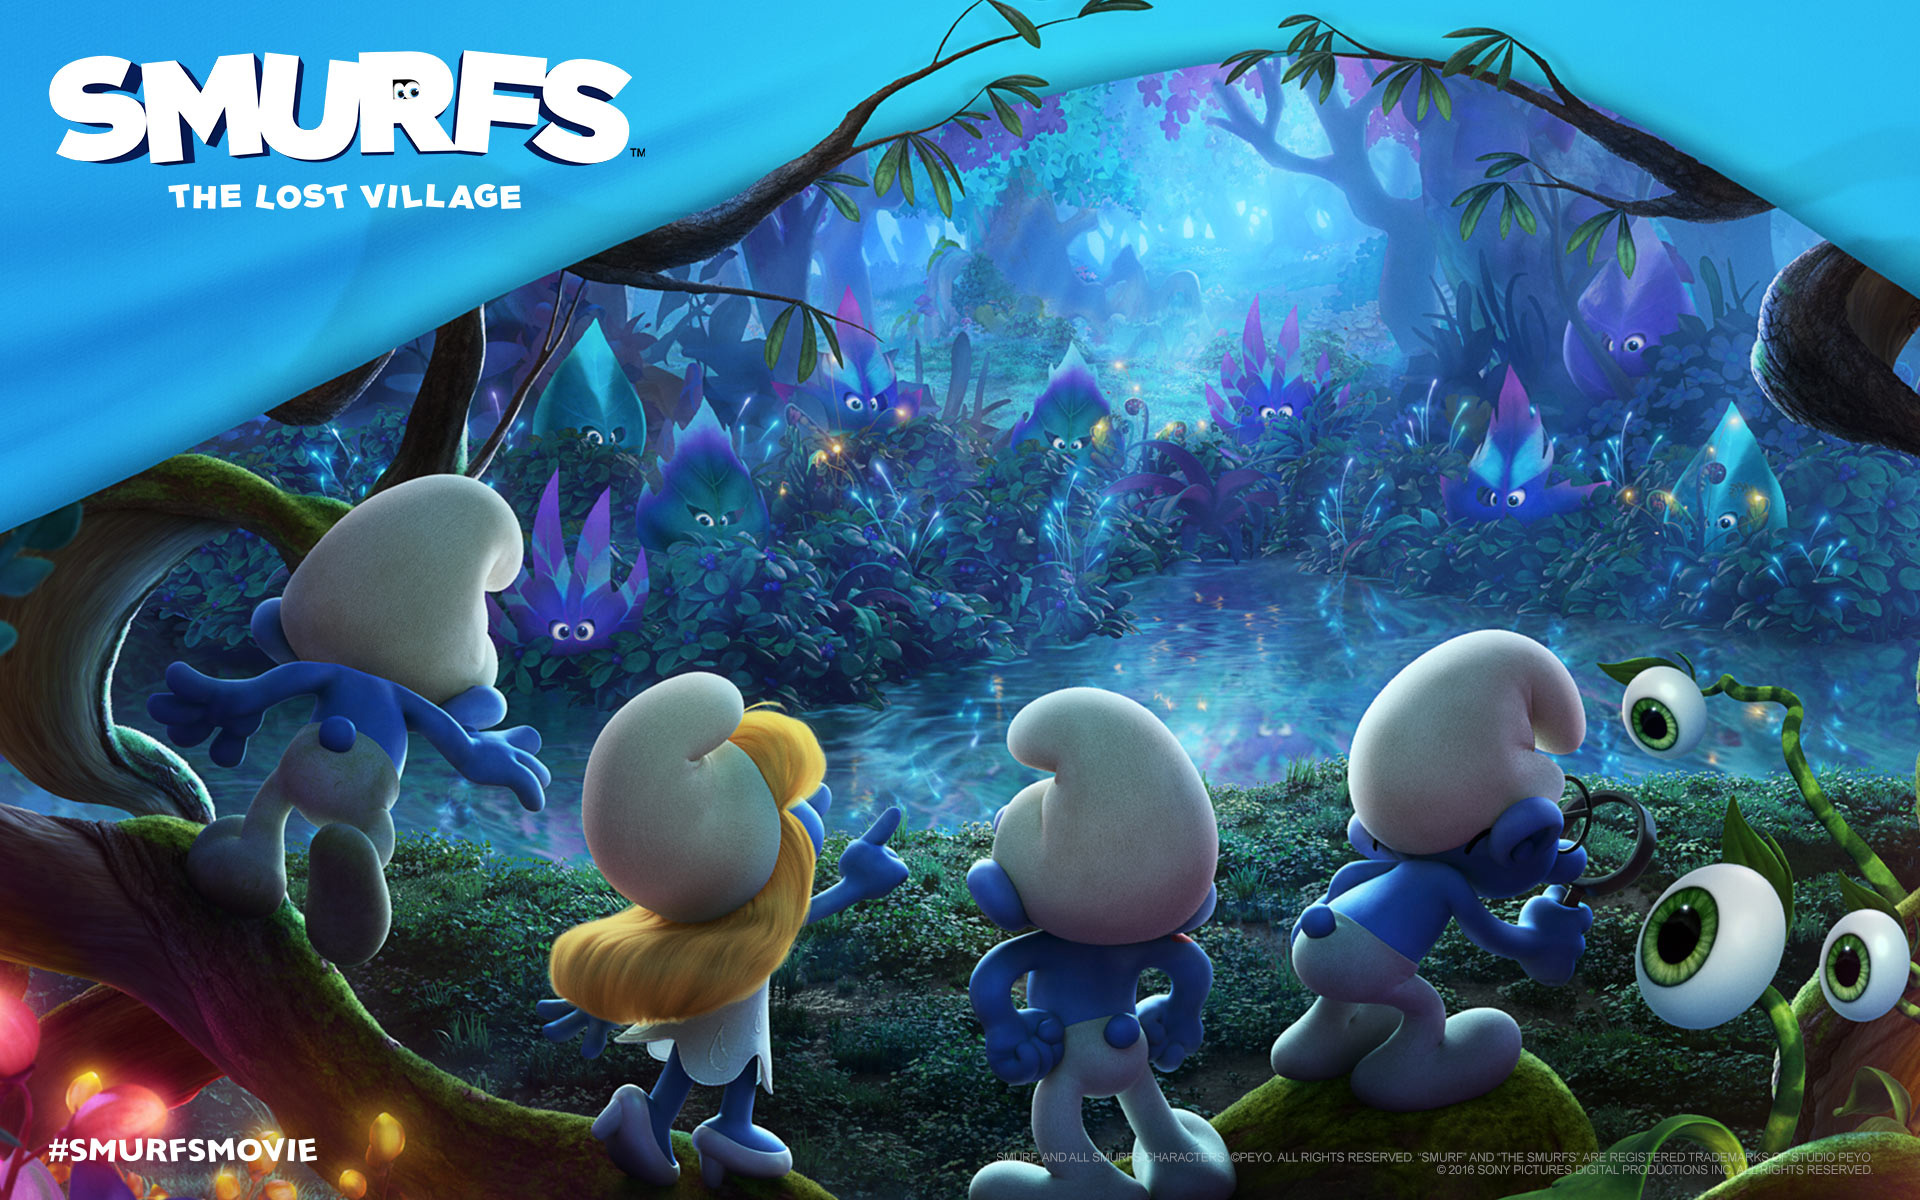 SMURFS The Lost Village Activity Sheets! - Mom the Magnificent